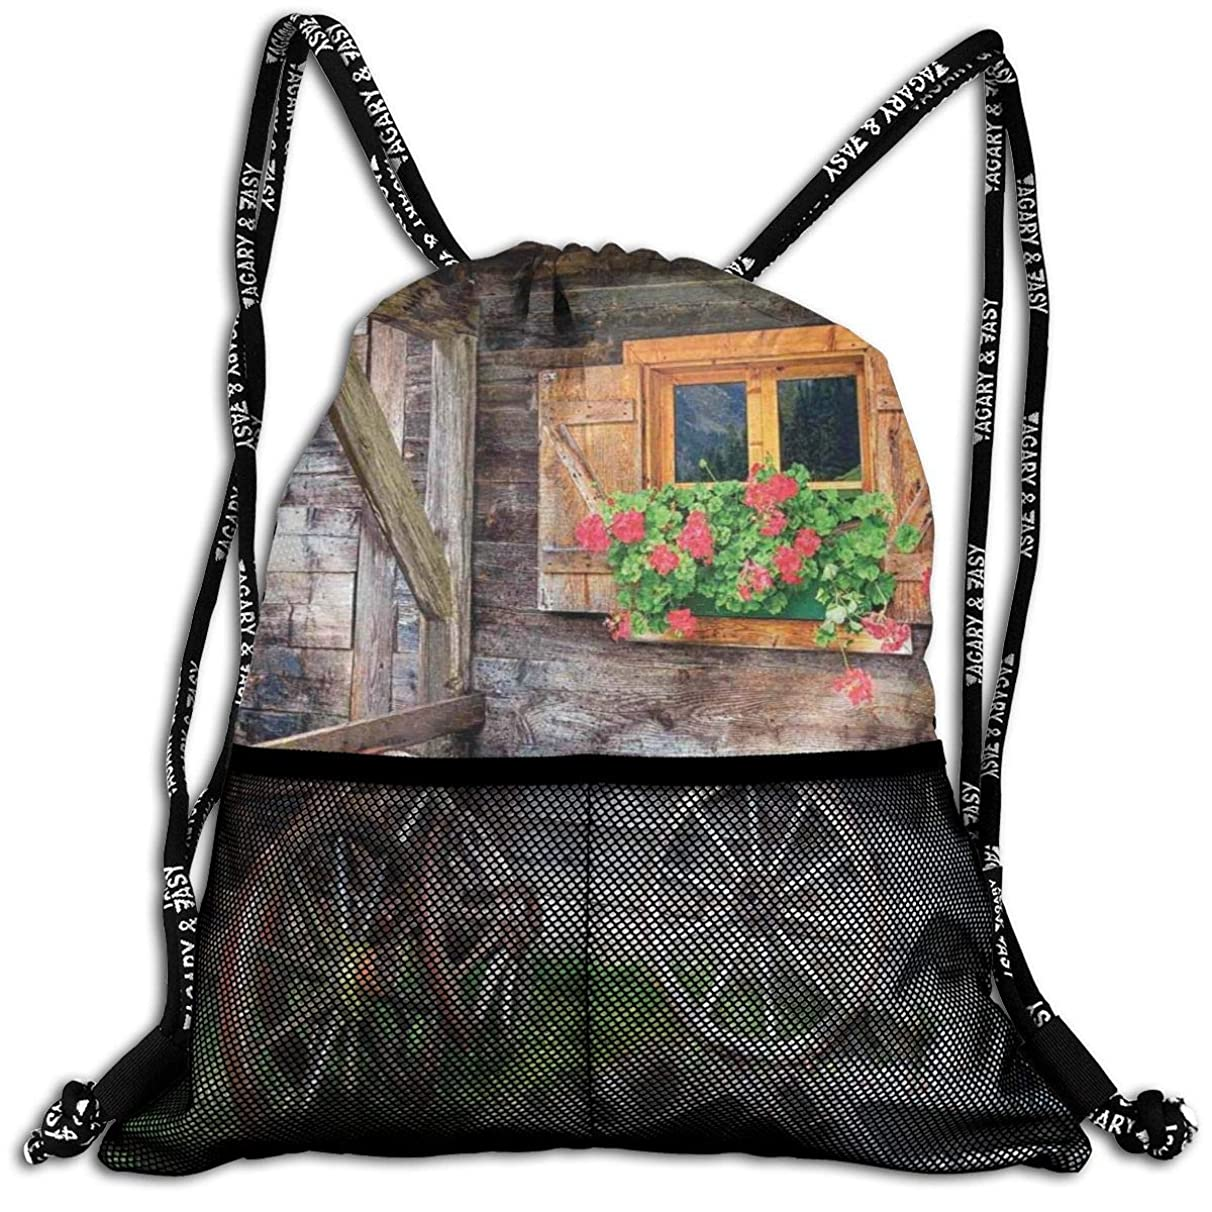 Drawstring Backpacks Bags,Weathered Window With Flowers In Pot Wheels Farmhouse Rural Scene Front View,5 Liter Capacity,Adjustable